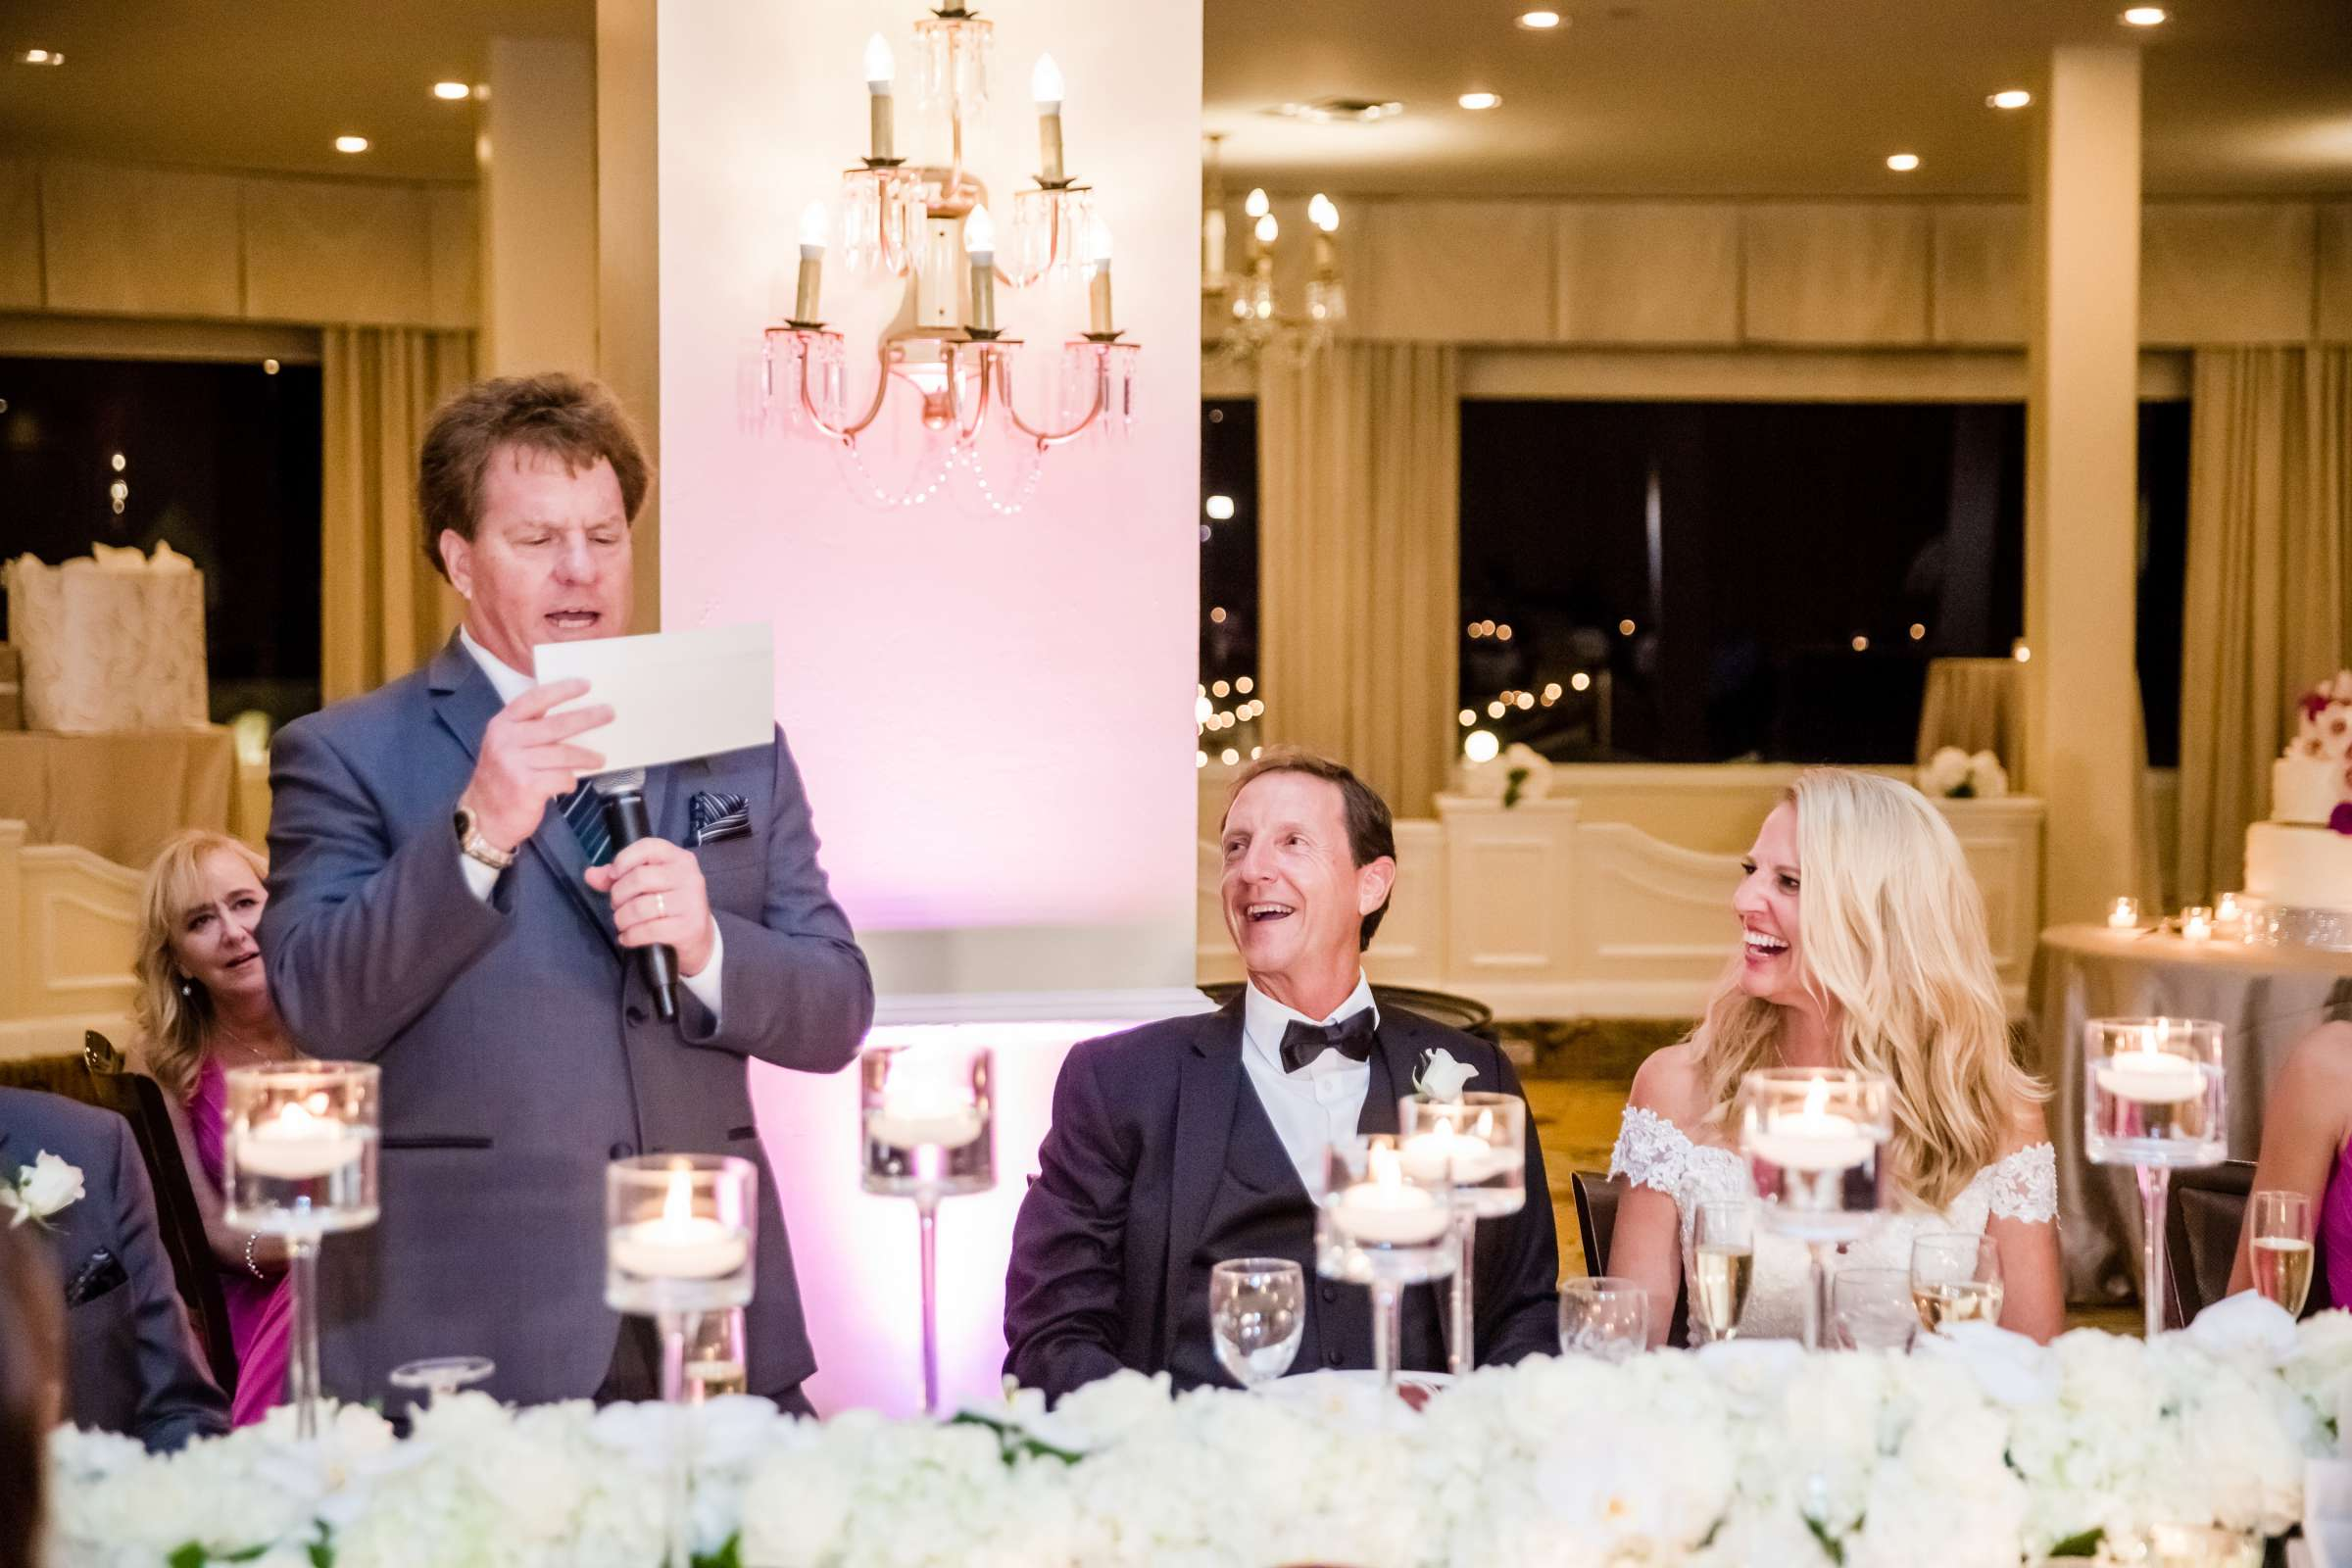 Hotel Del Coronado Wedding coordinated by Creative Affairs Inc, Diane and Paul Wedding Photo #90 by True Photography